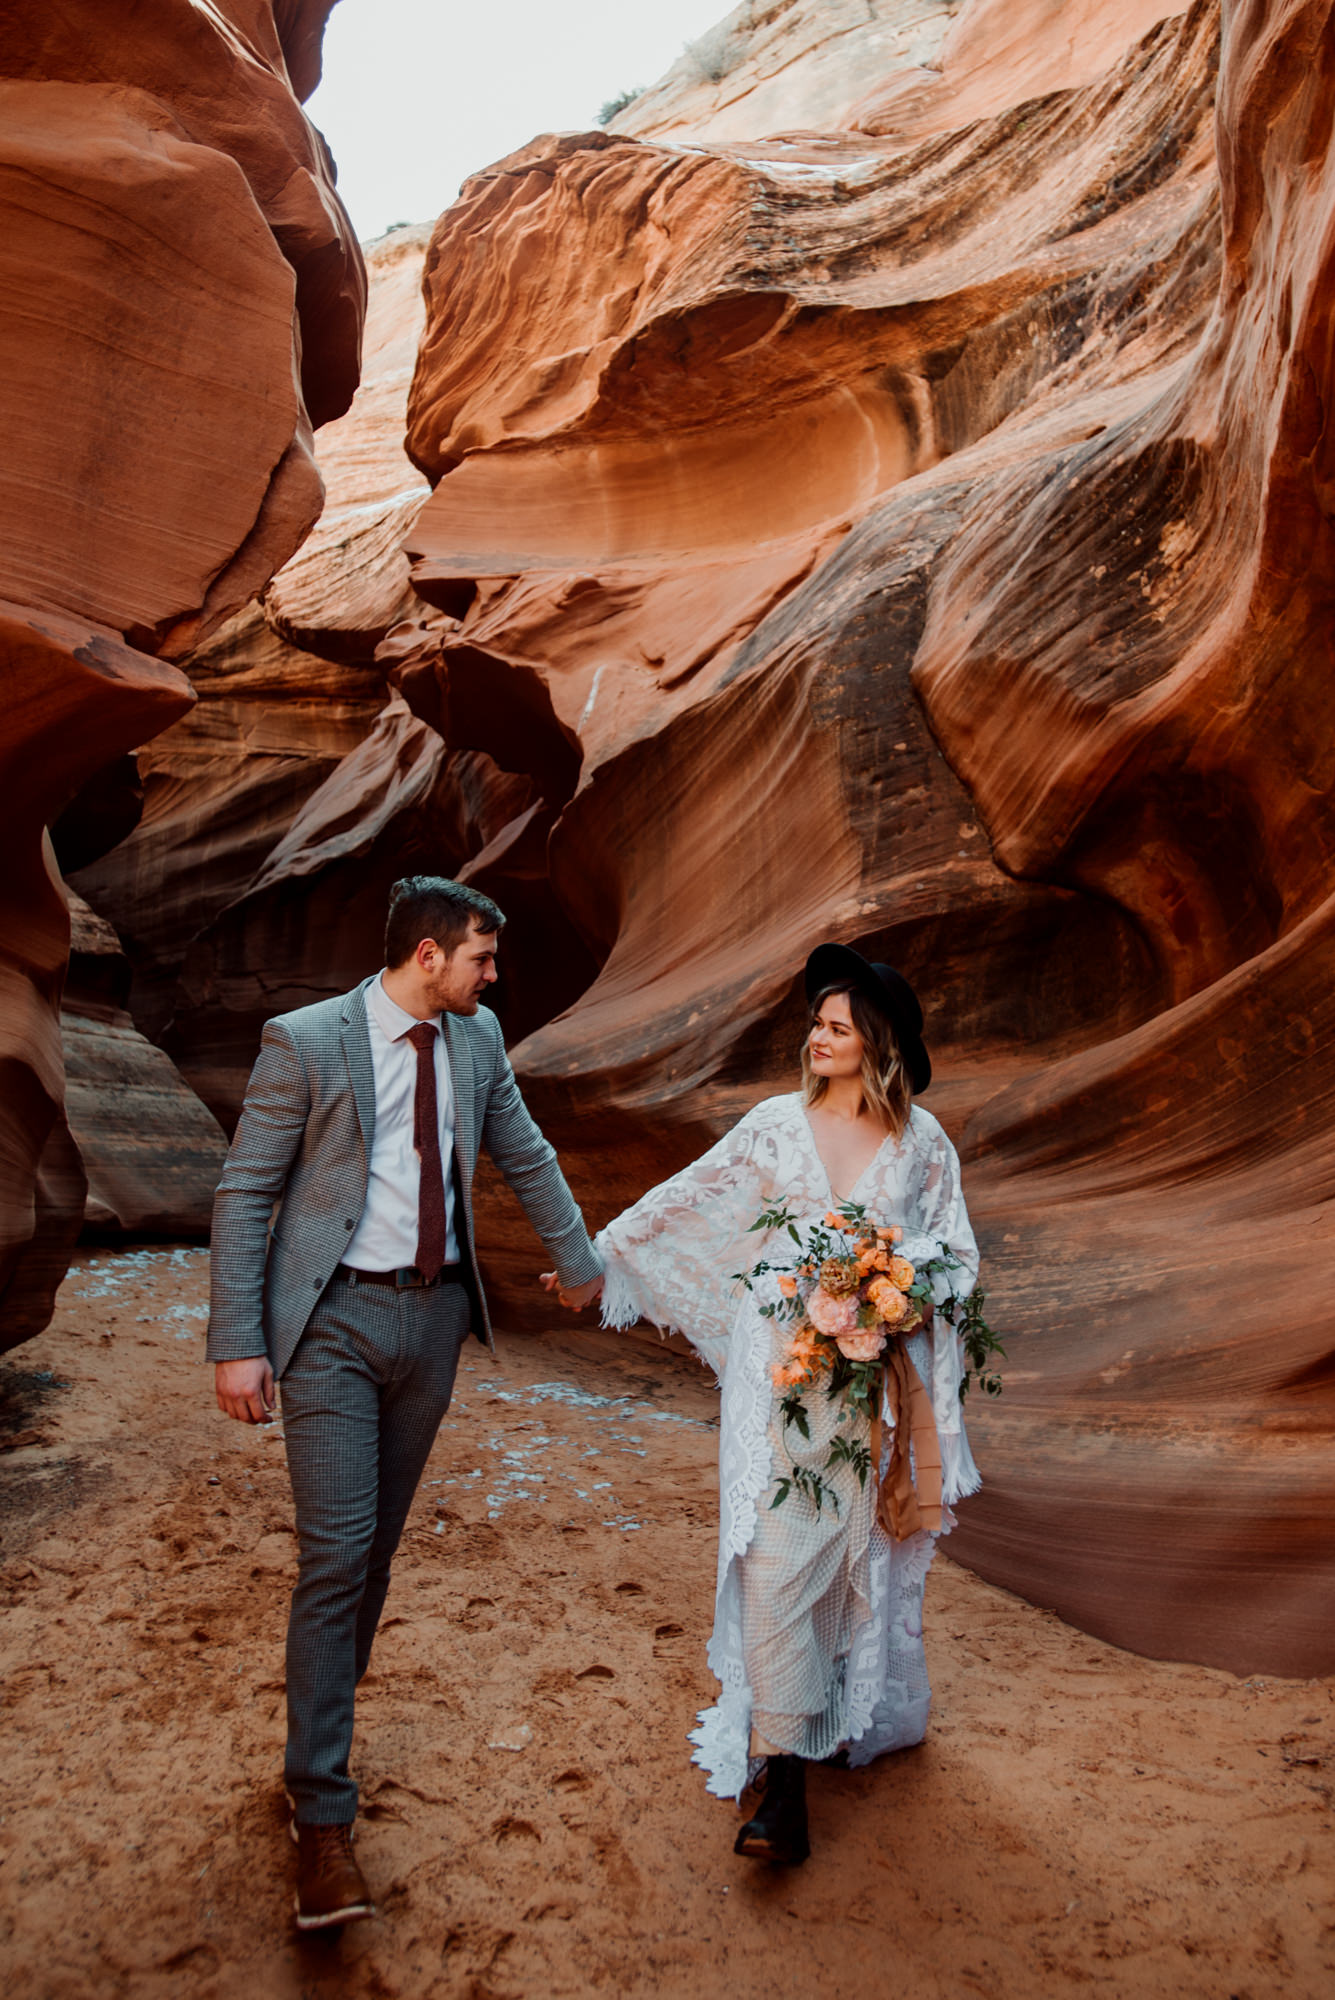 I love that this couple chose to dedicate time for photography for their Arizona wedding.